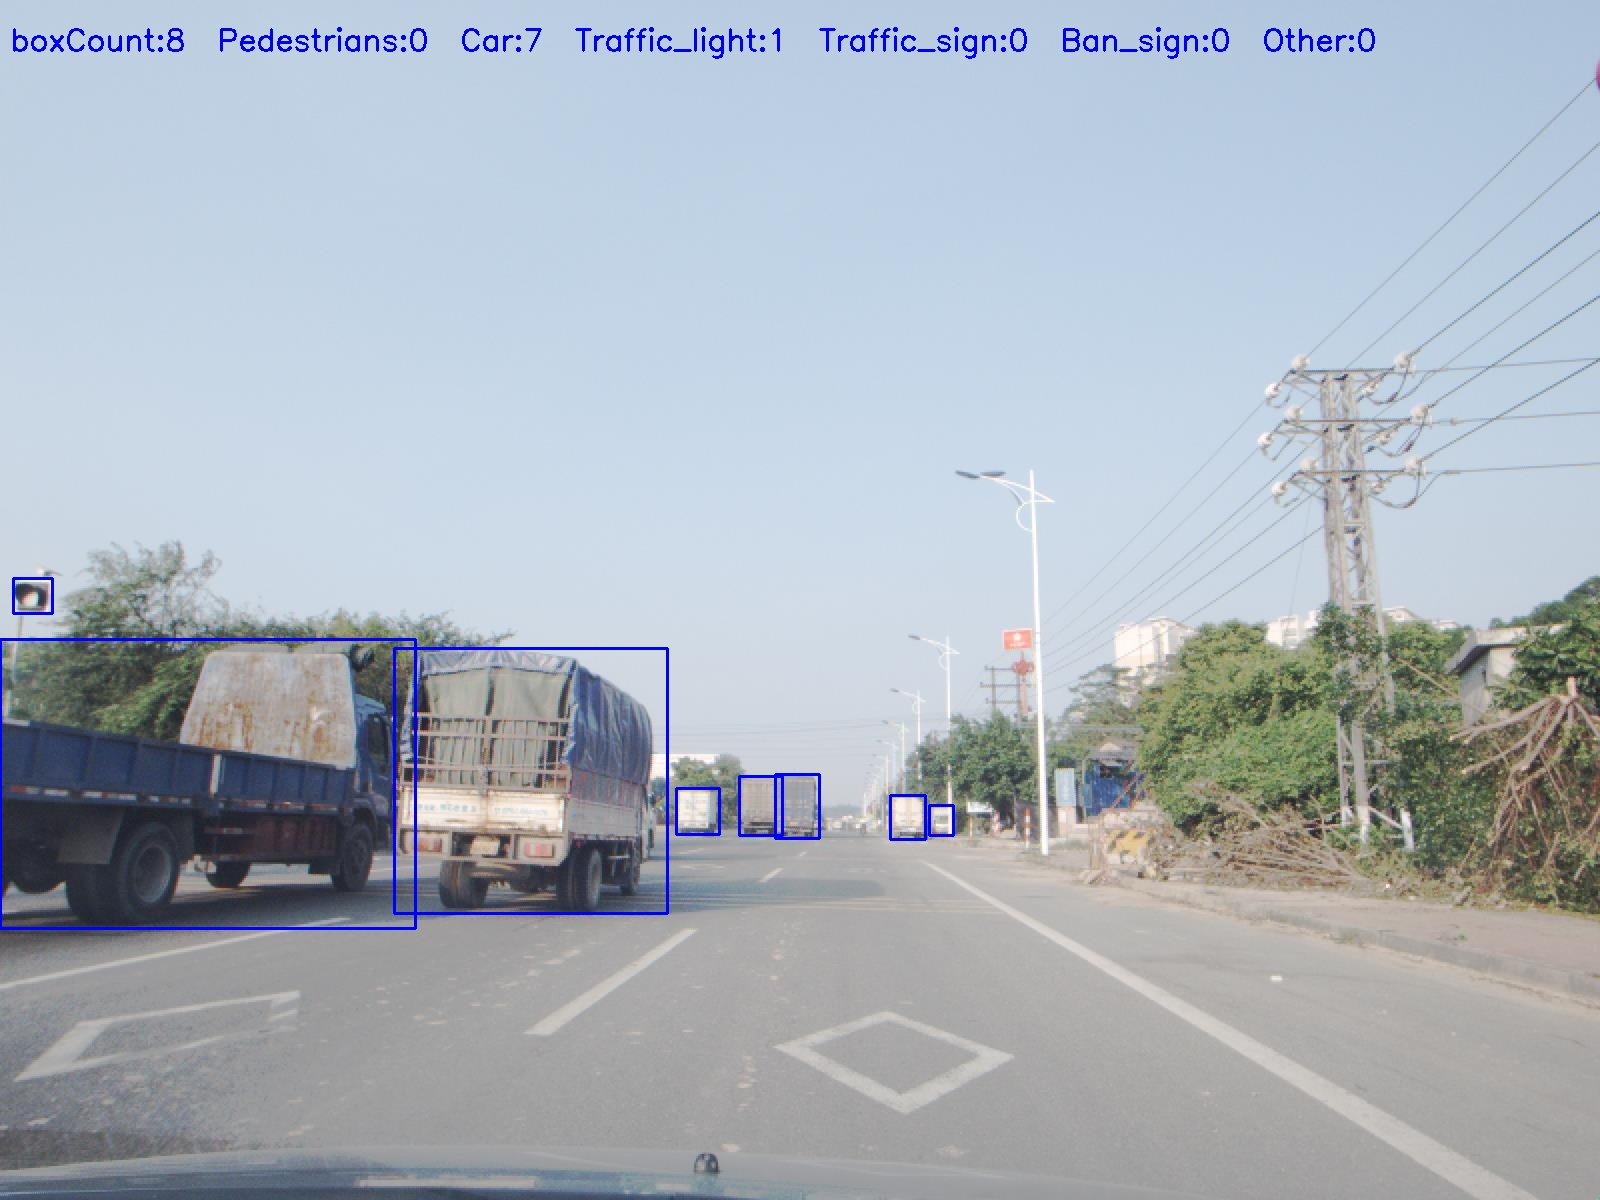 530,000 Steetview Images _530,000 Images with Bounding box Annotation_Data Products_Datatang